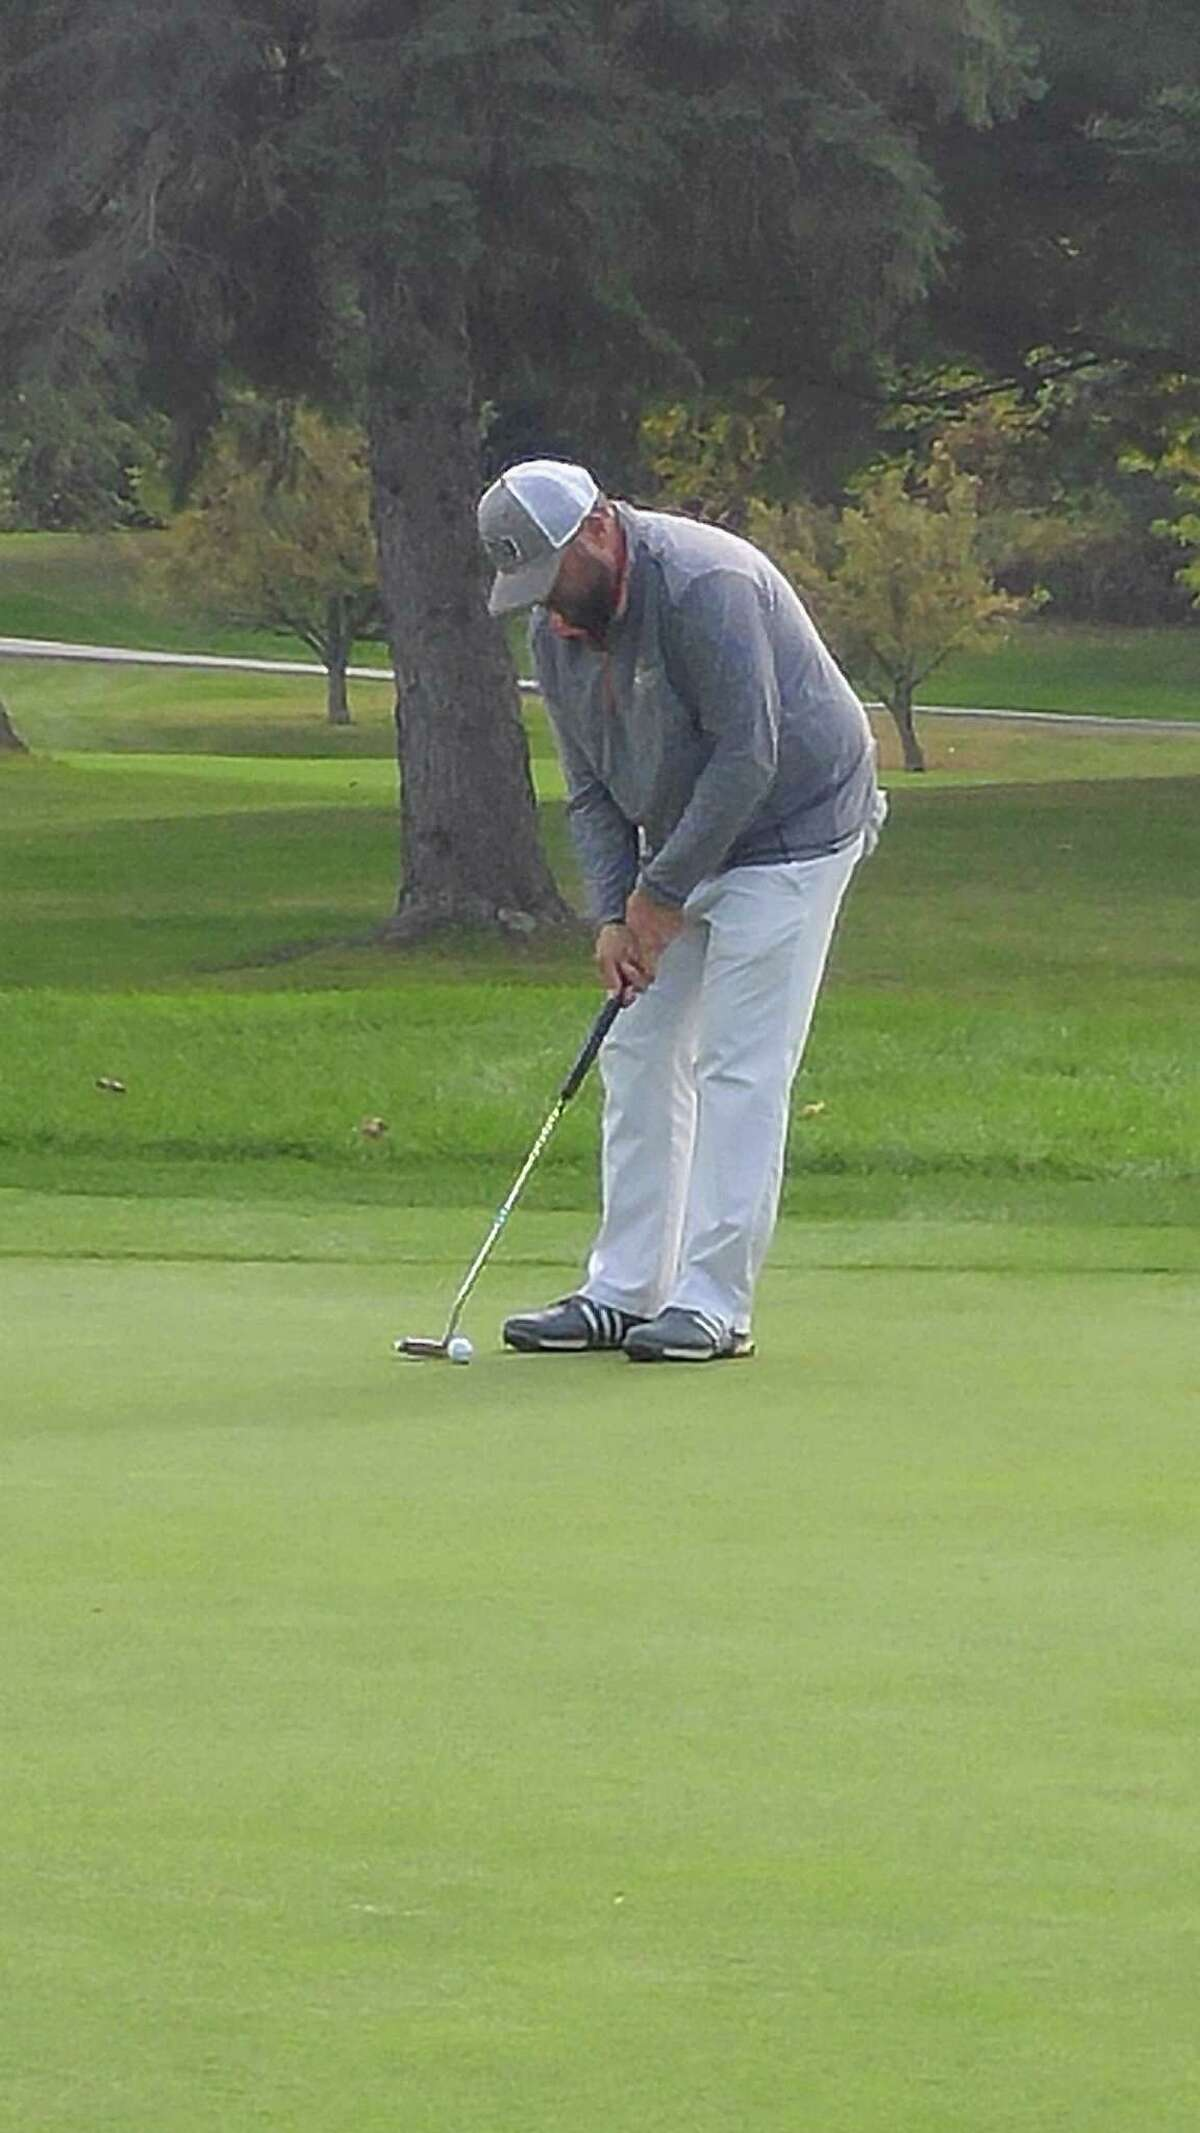 Scott Berliner of Hiland attempts a birdie putt Wednesday, Oct. 9, 2019, during the Northeastern New York PGA Tour Championship at the Albany Country Club. (Pete Dougherty / Times Union)